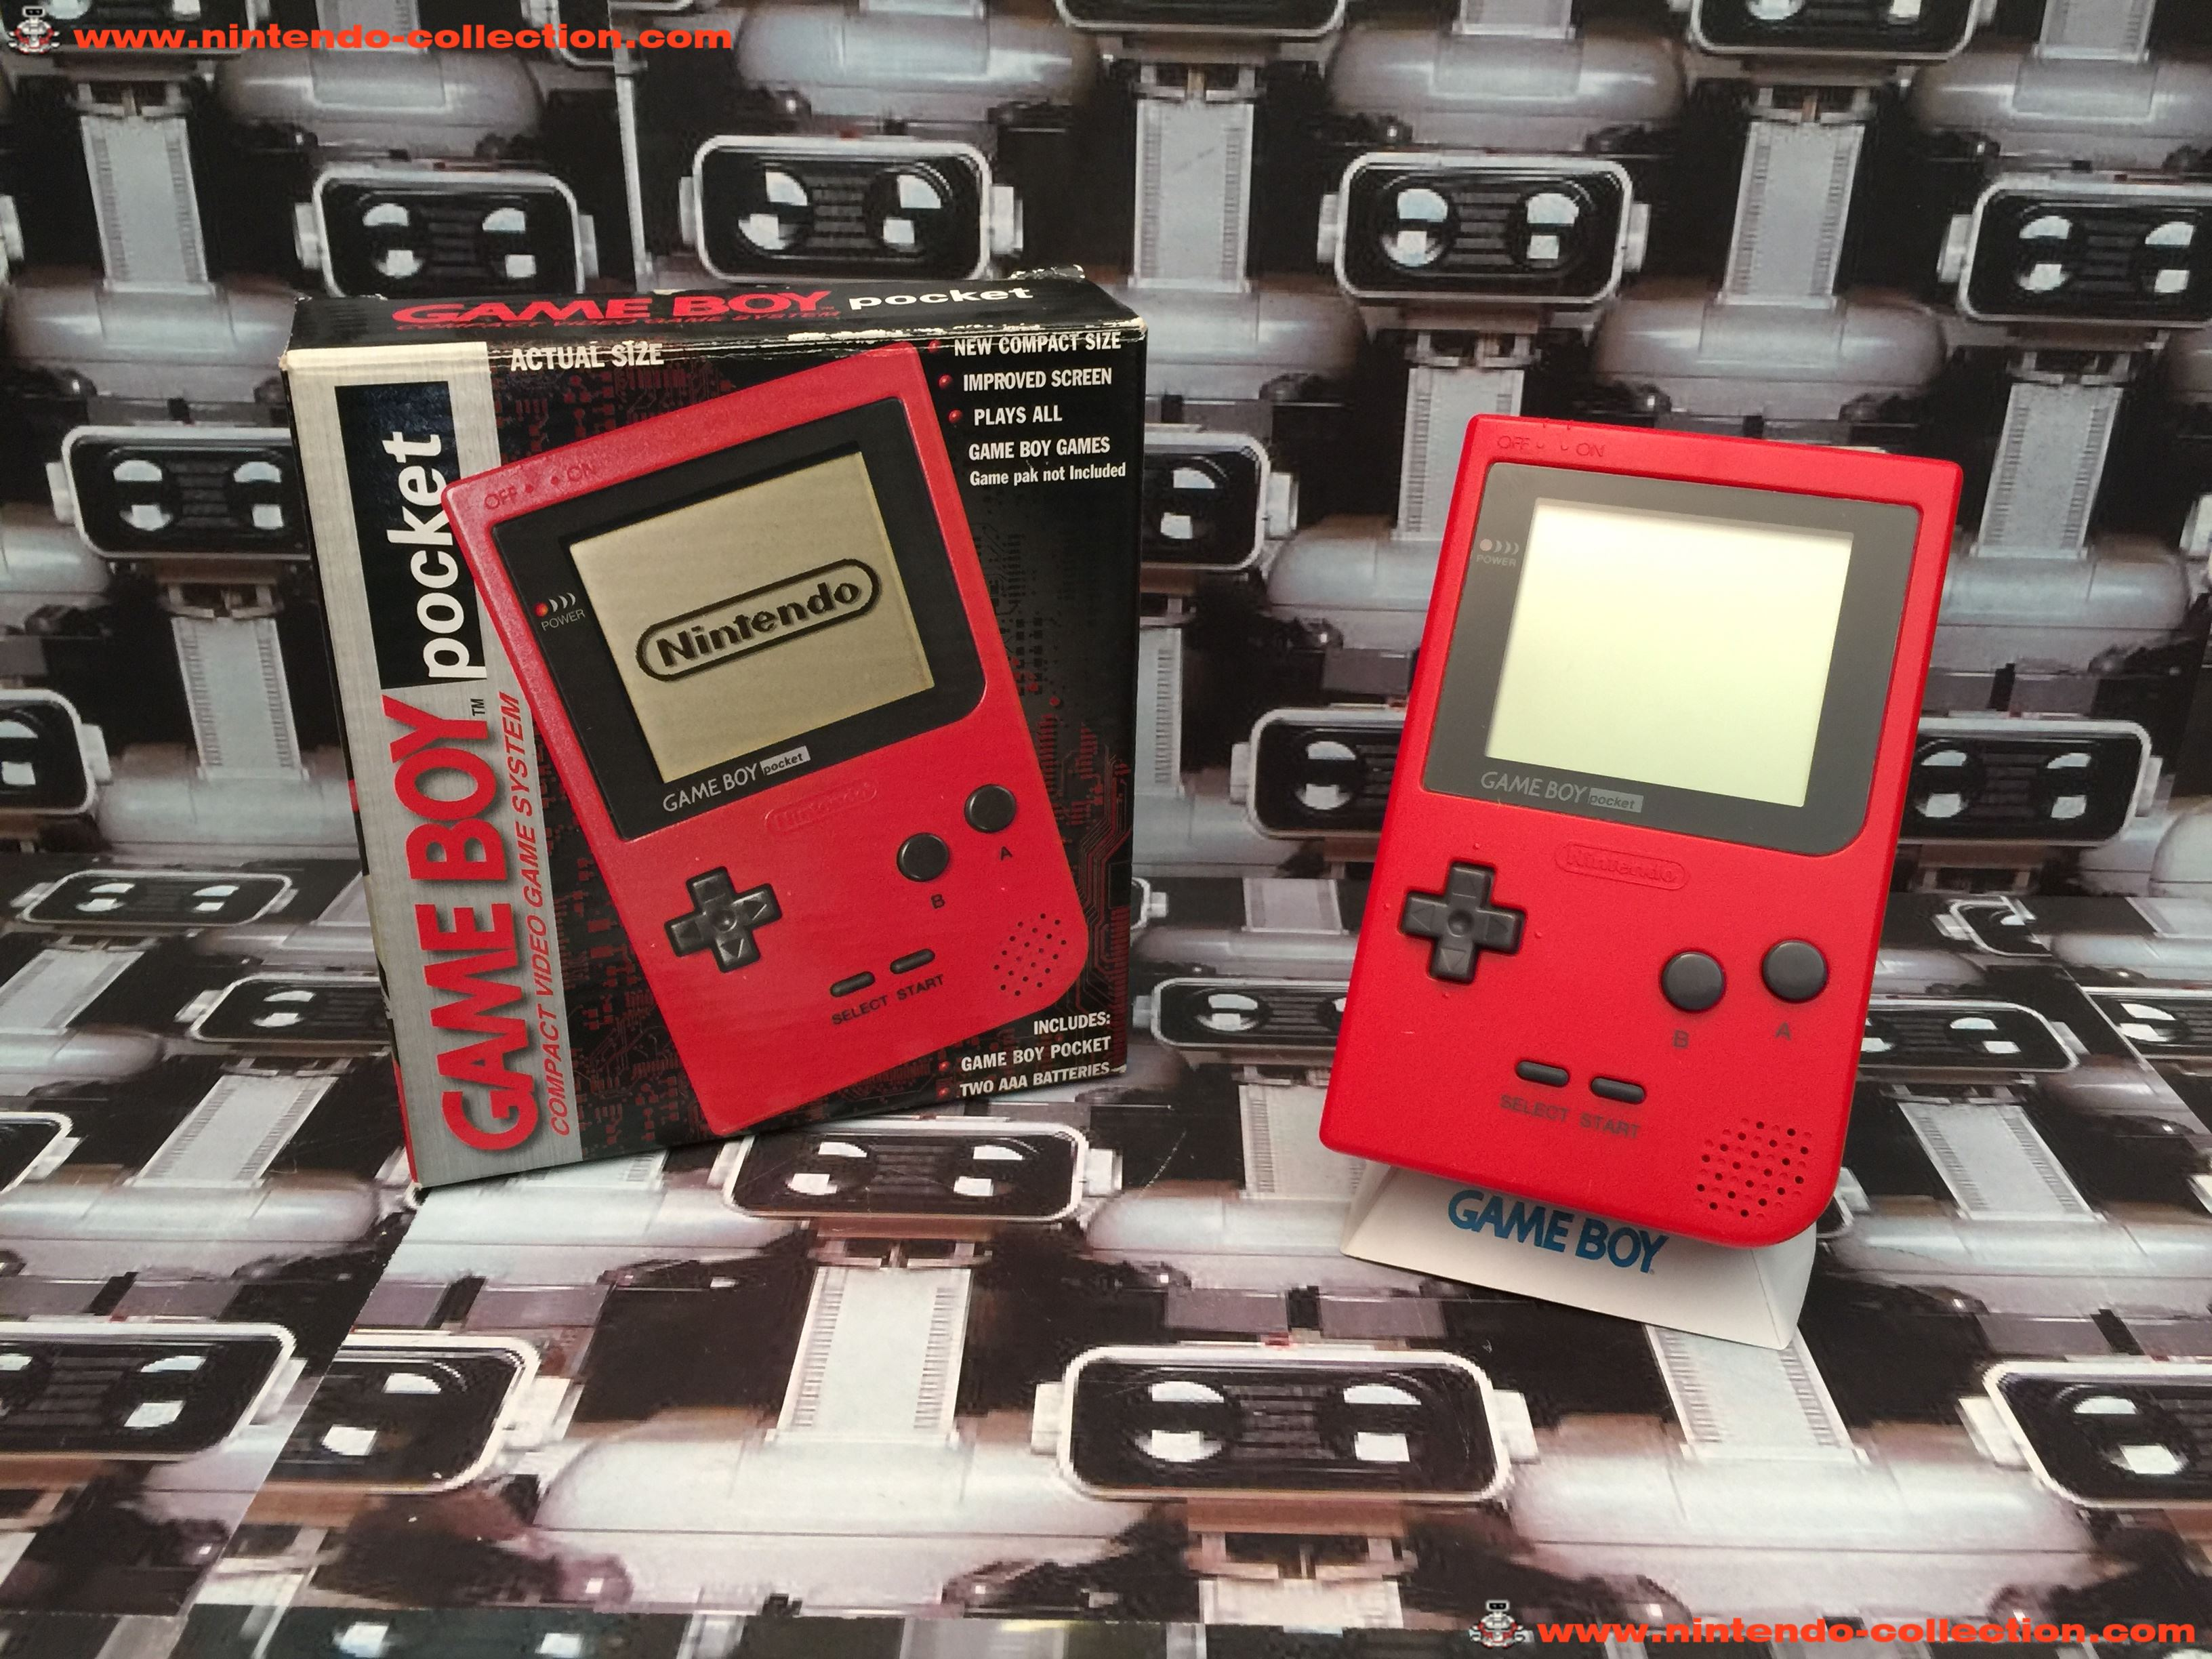 www.nintendo-collection.com - Gameboy GB Pocket Red Rouge en boite in box European Europe